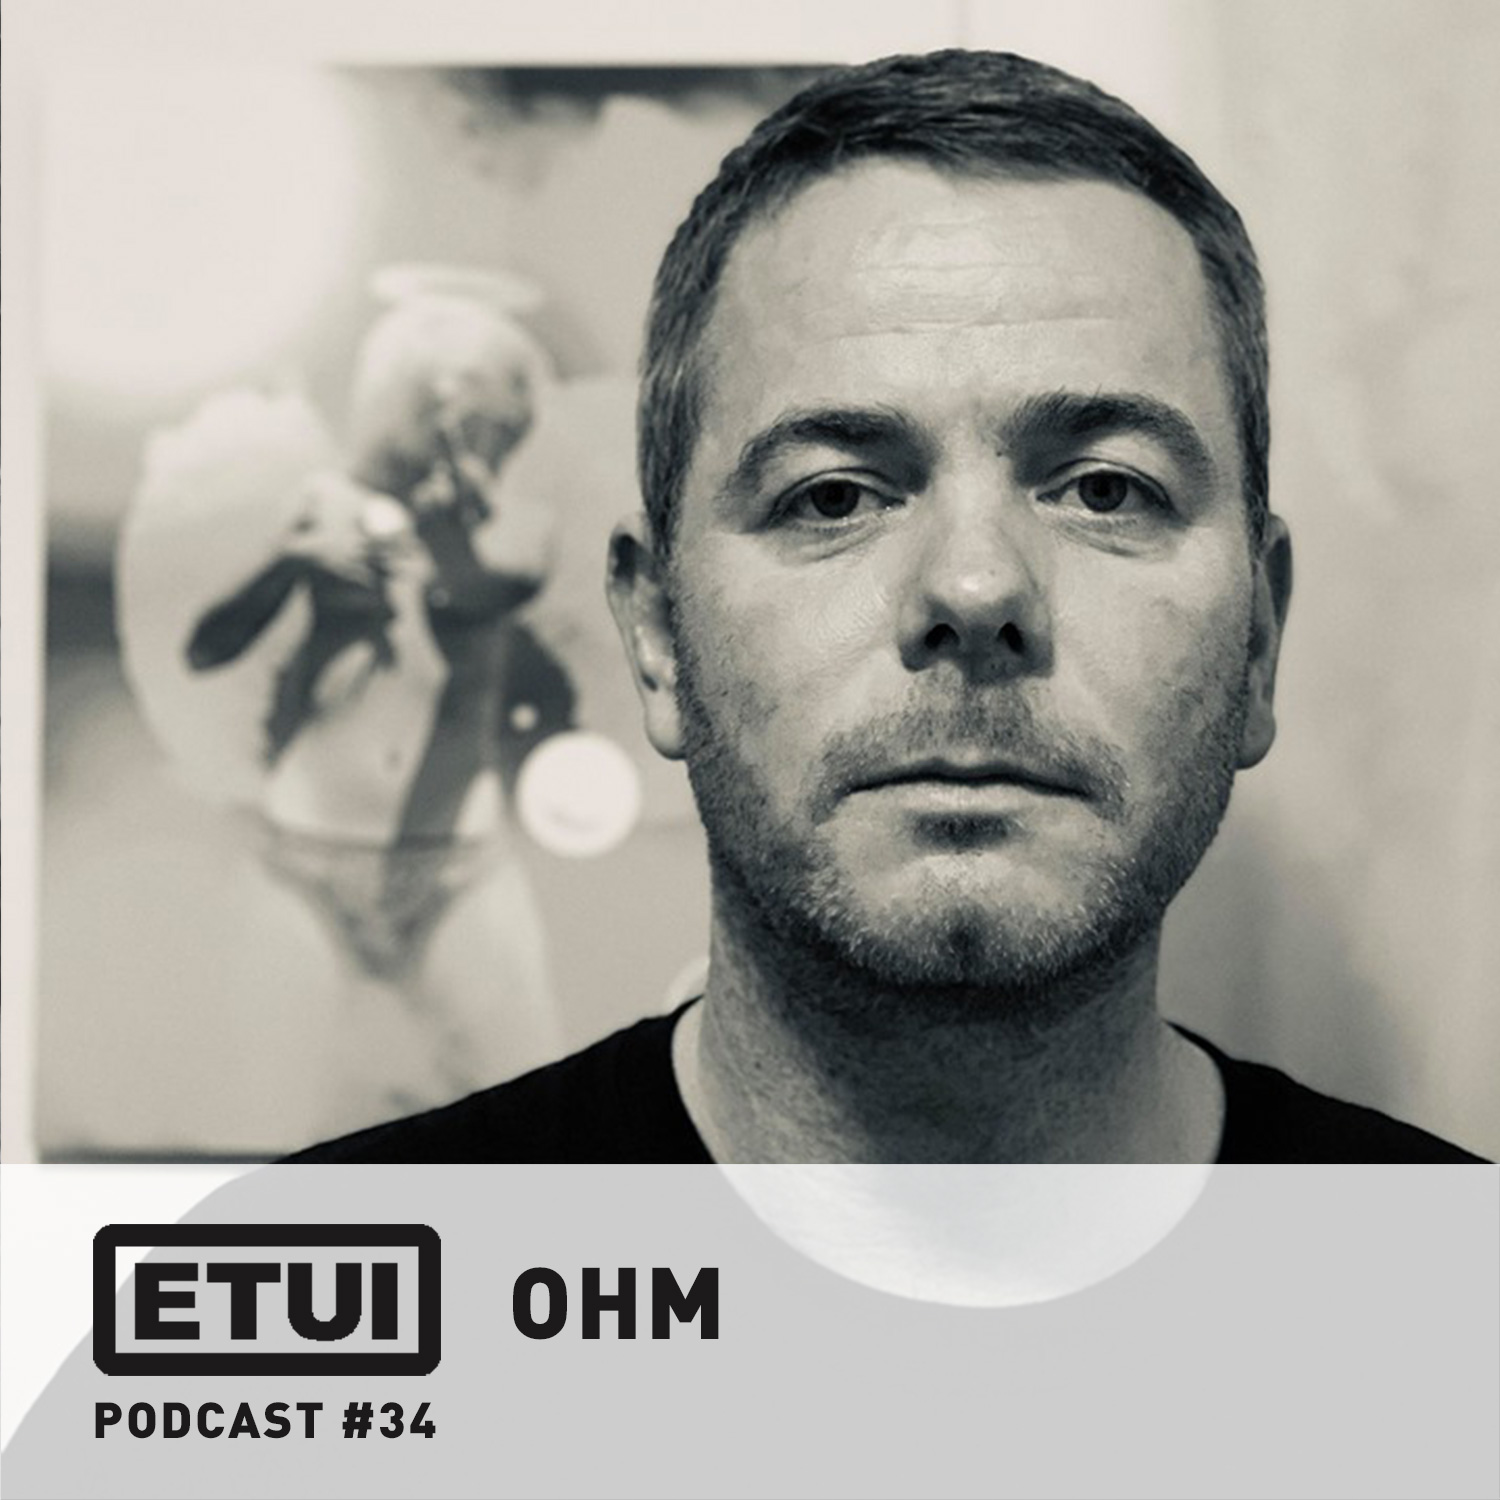 Etui Podcast #34: Ohm